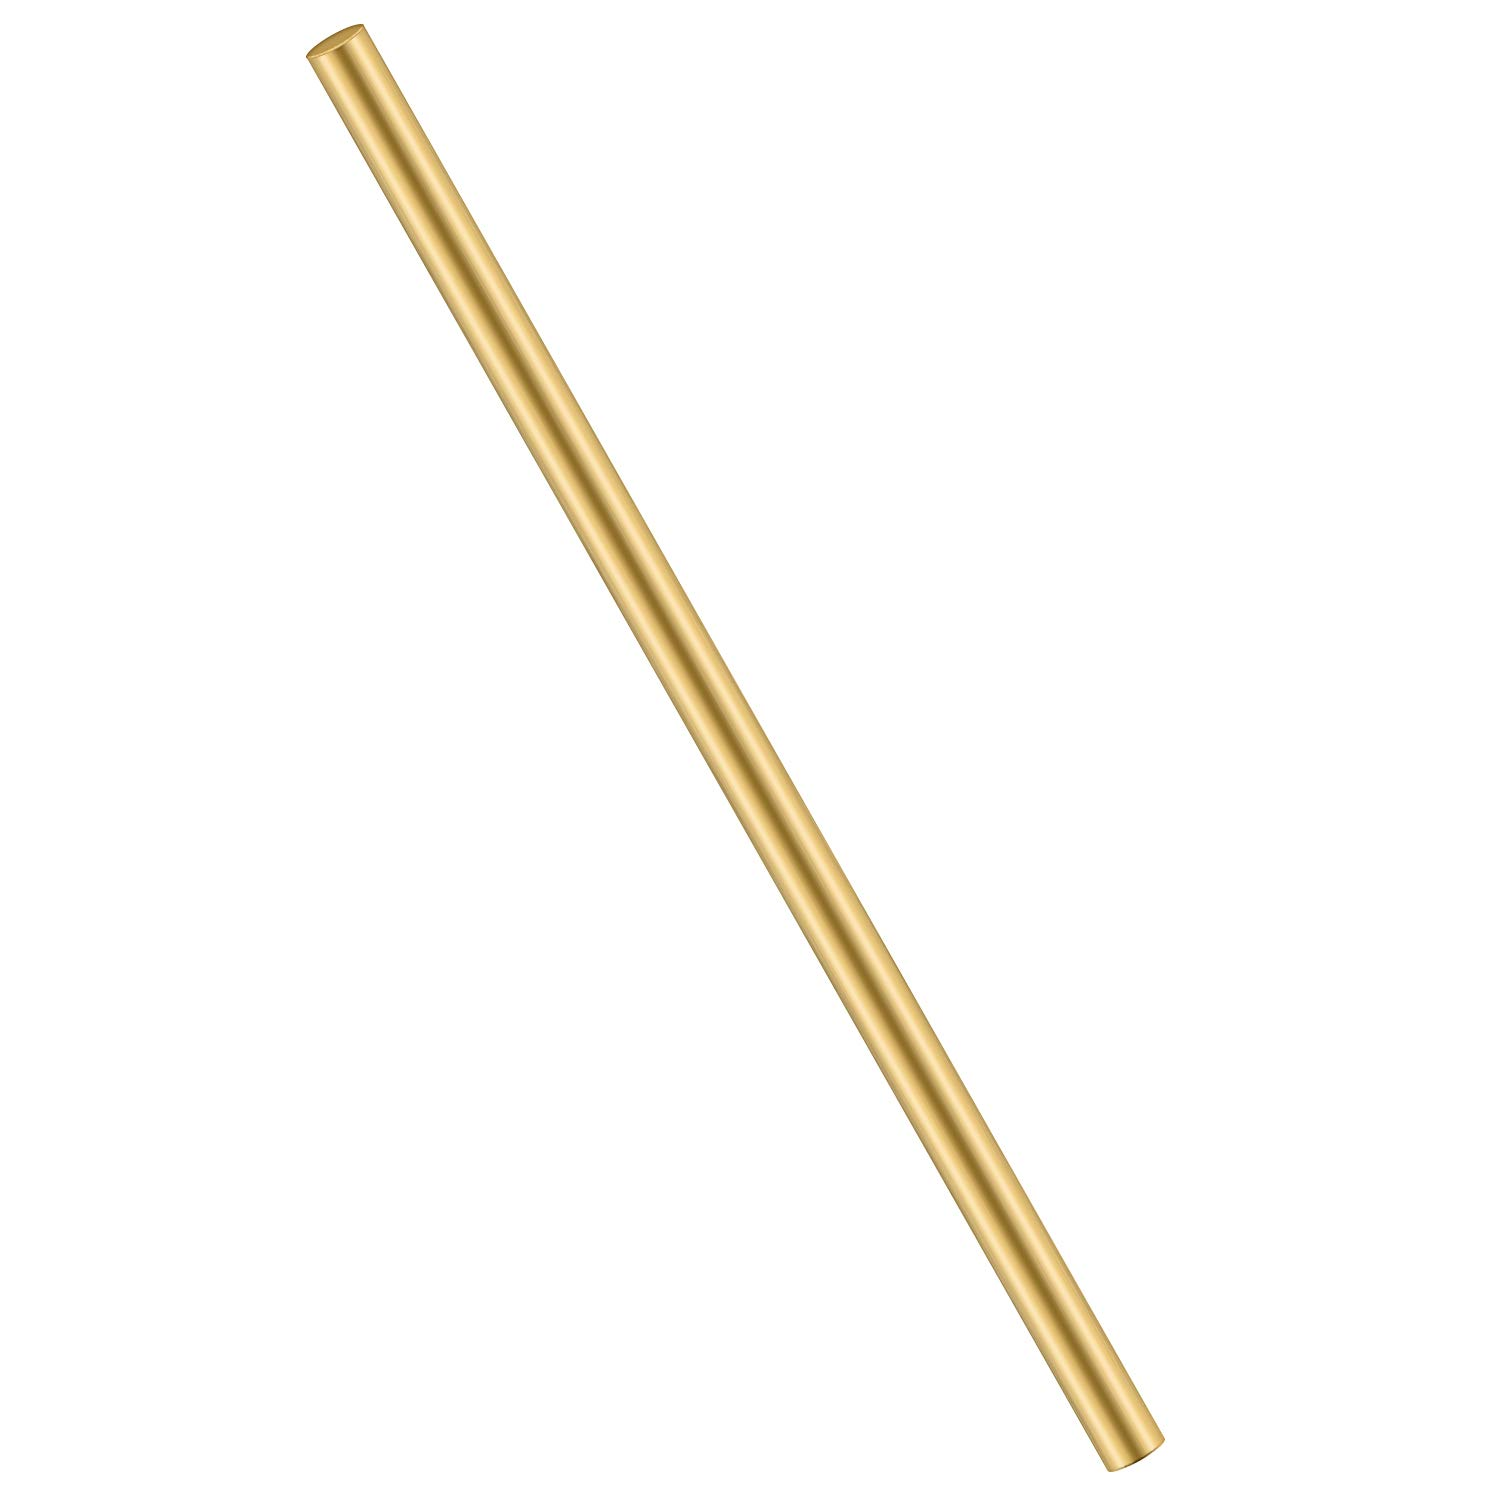 1/2 Inch Brass Round Rod, Favordrory 1PCS Brass Round Rods Lathe Bar Stock, 1/2 Inch in Diameter 12 Inch in Length